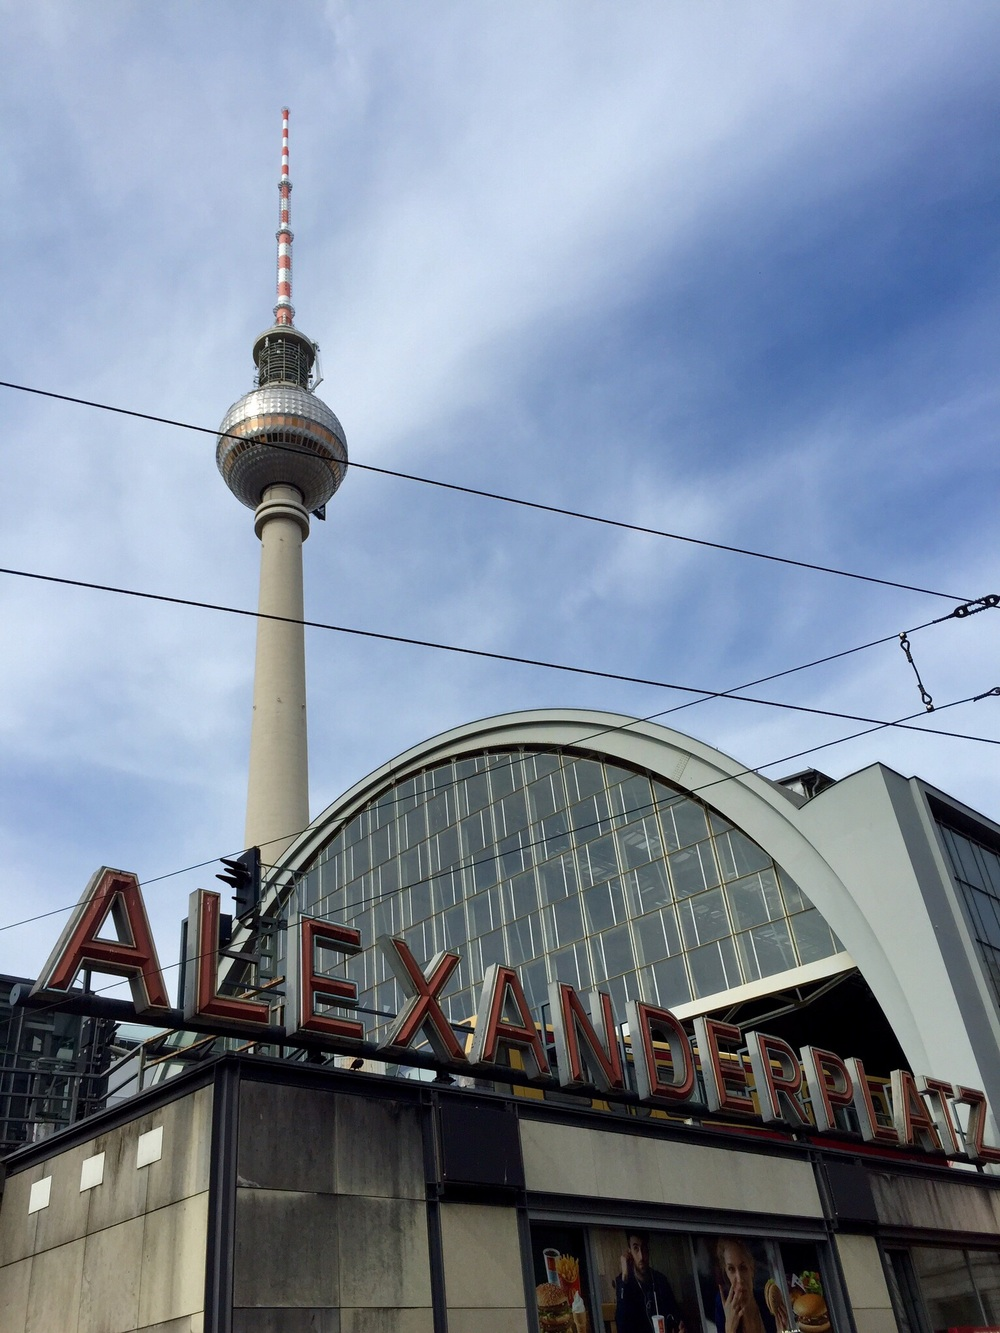 The TV Tower at Alexanderplatz.